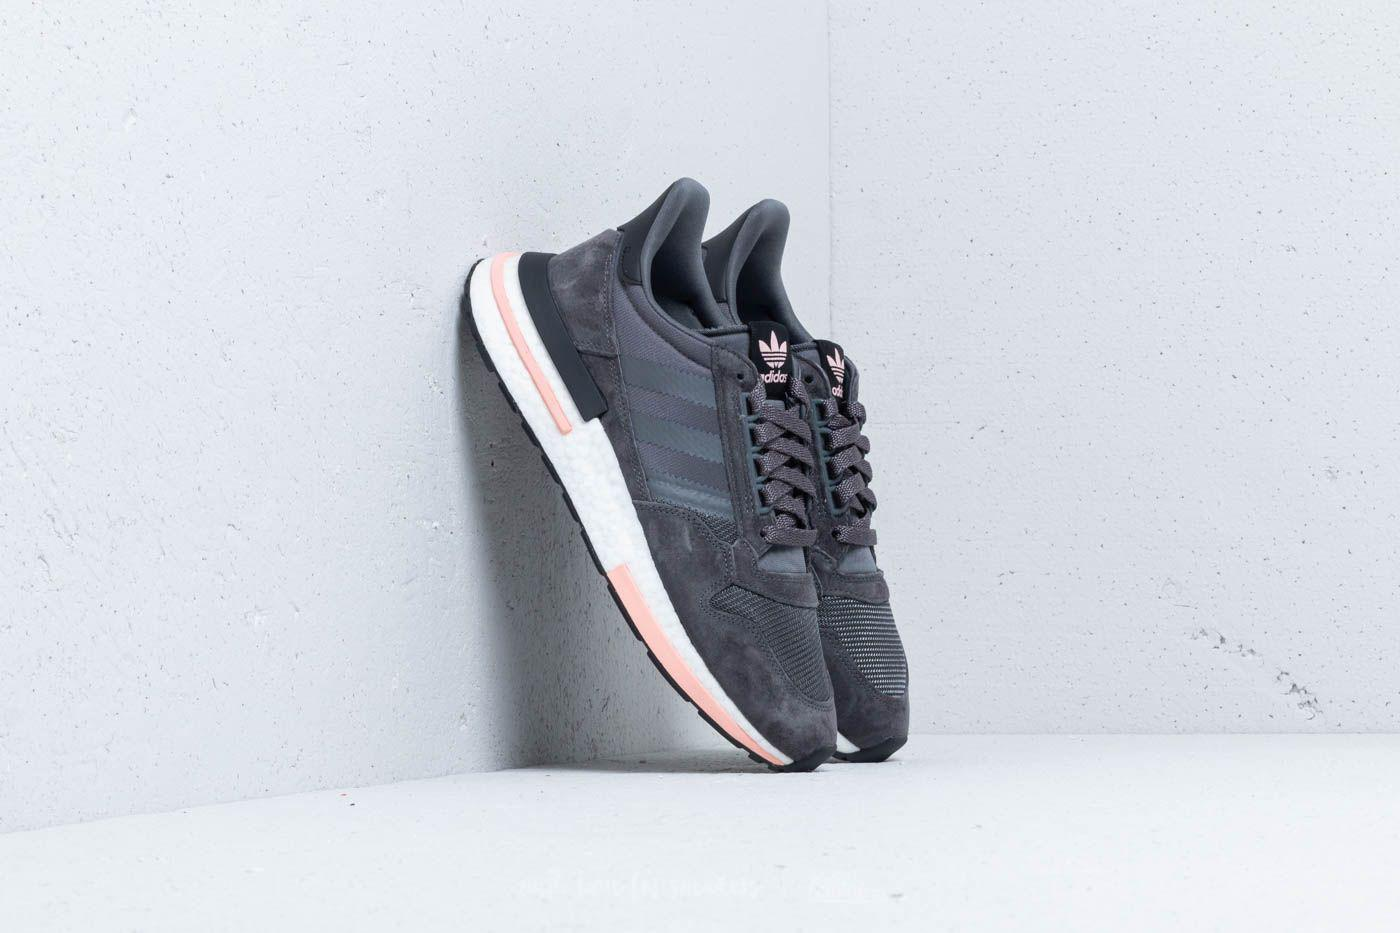 c3b3b12b5d52 Lyst - adidas Zx 500 Rm Shoes in Gray